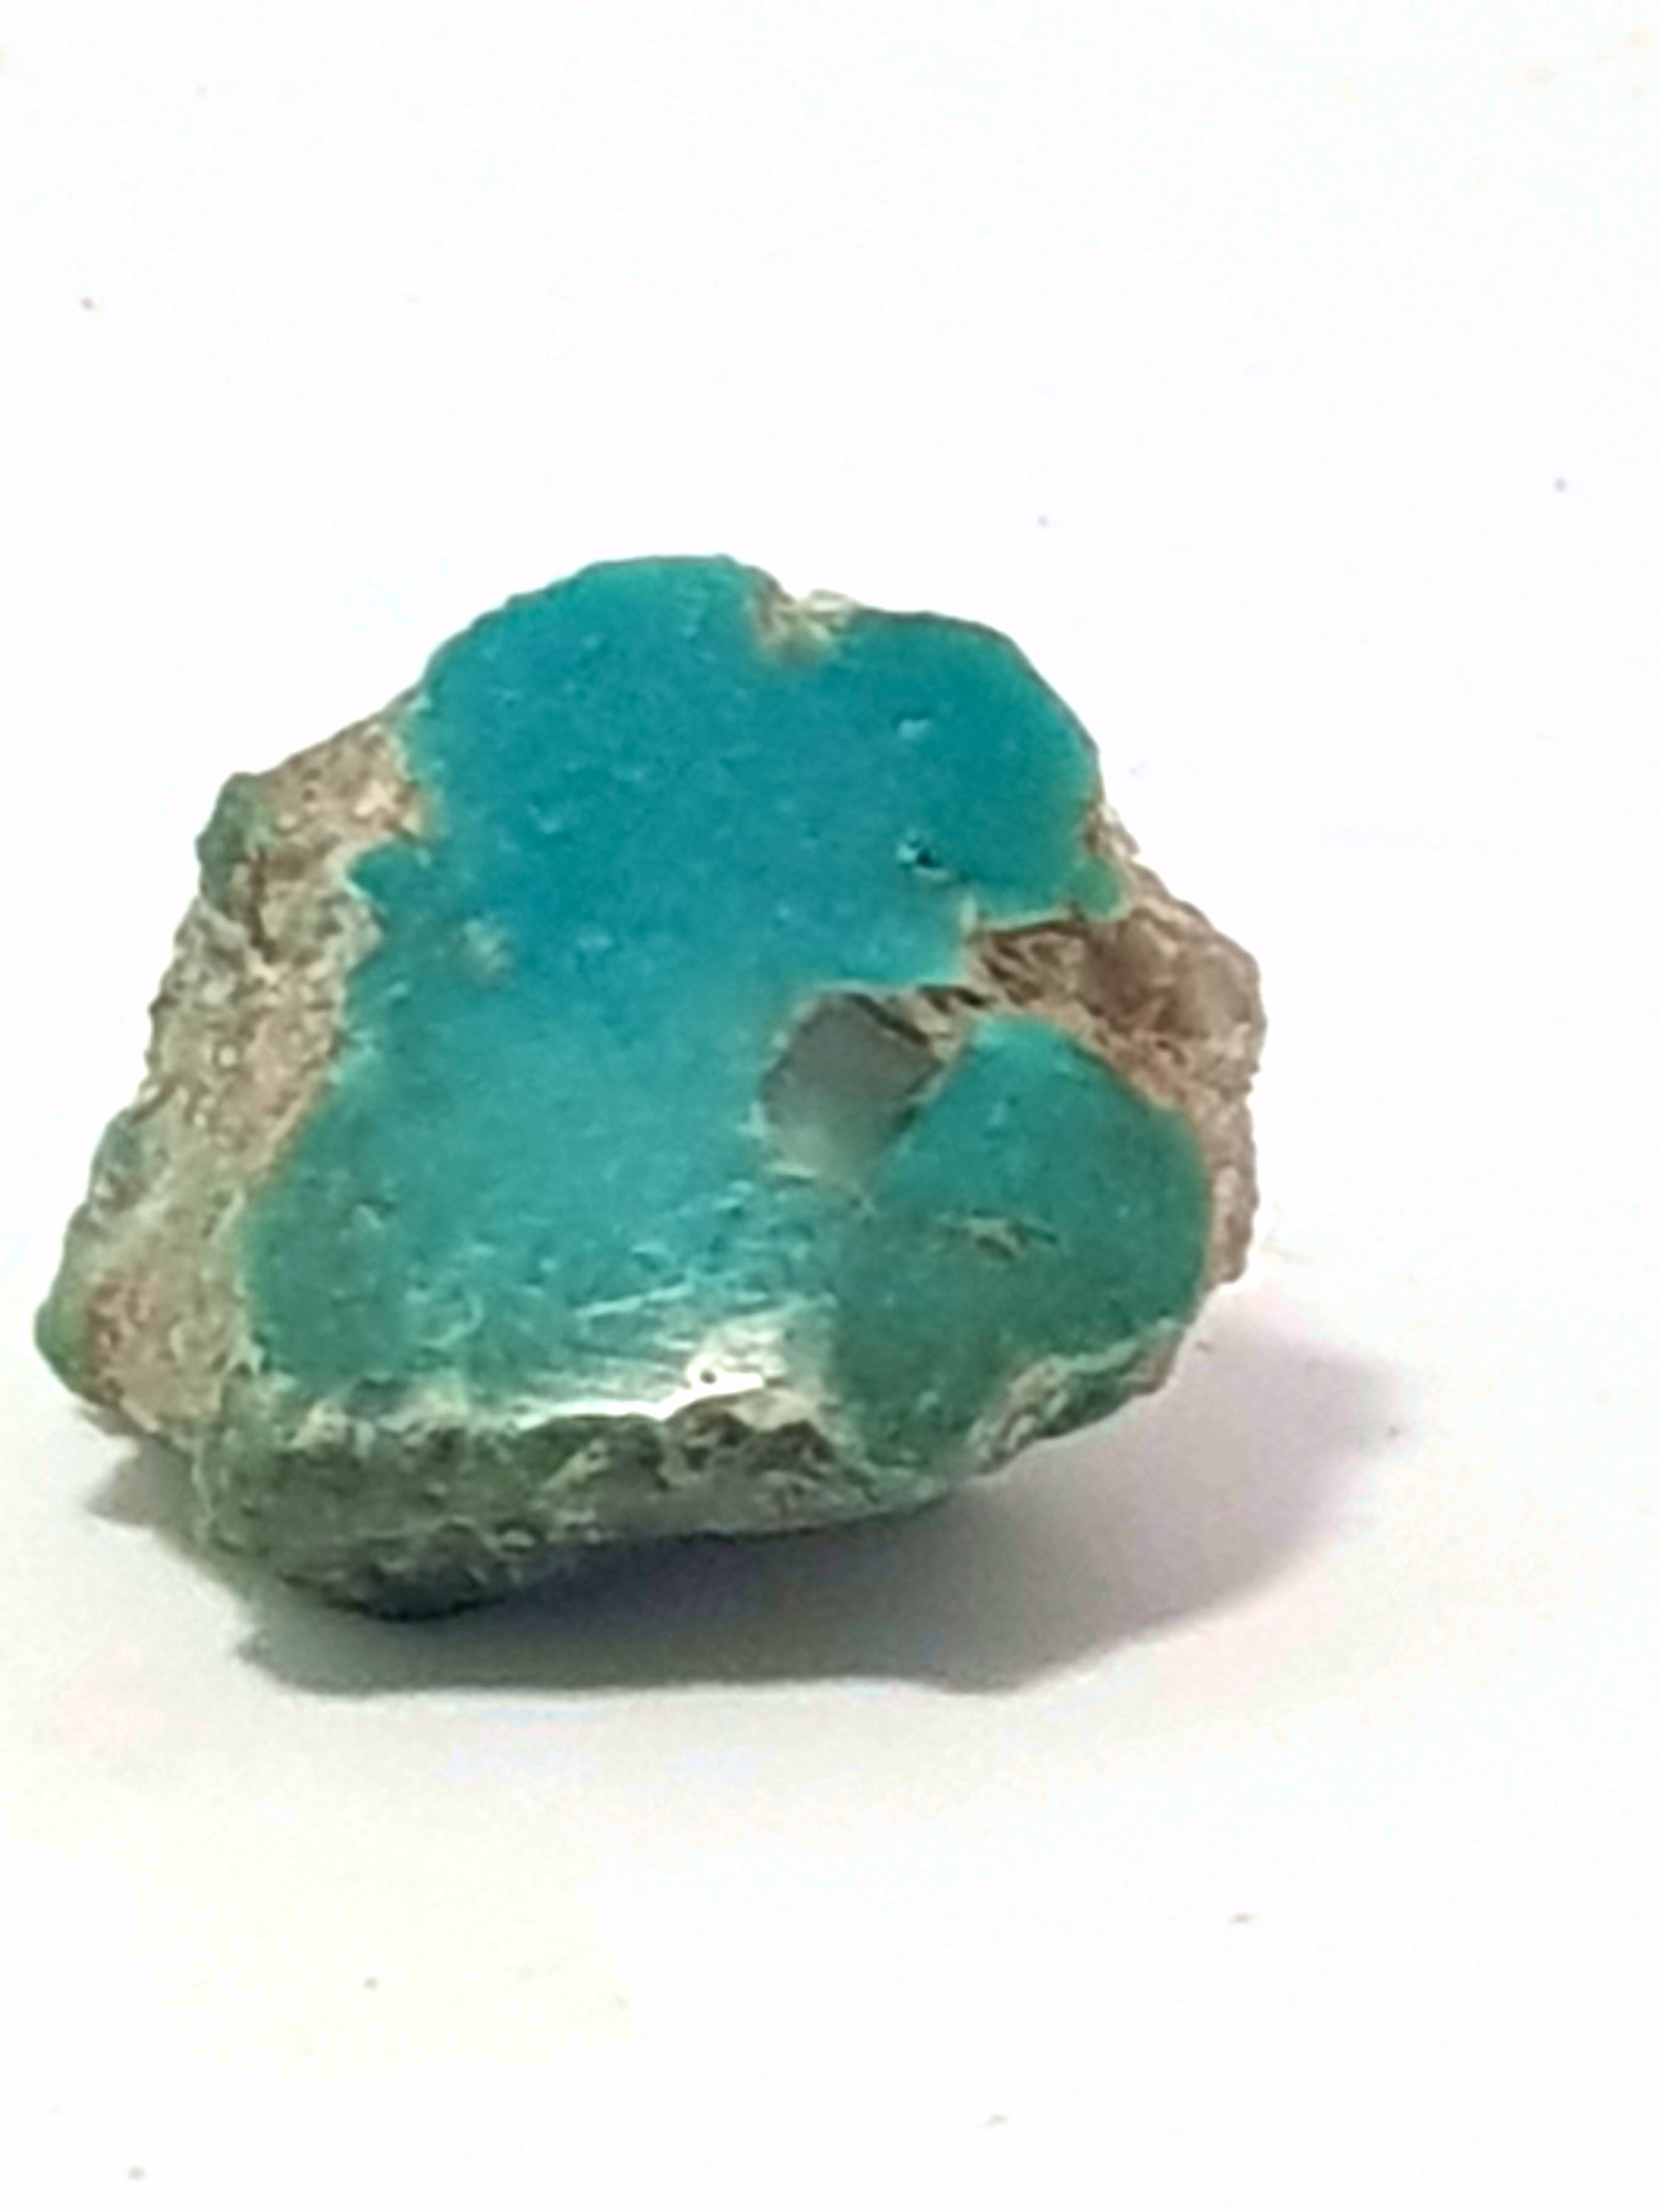 semi polished sample of kingman turquoise. This sample has a fully polished face. The sample is blue green.